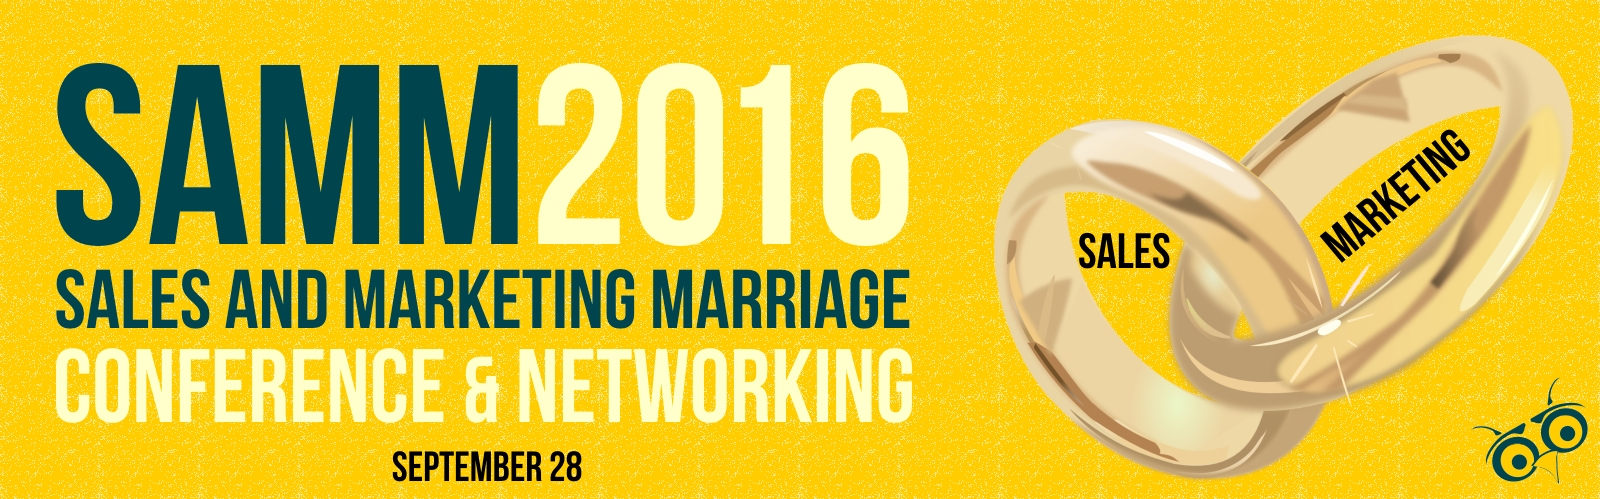 SAMM2016 Sales & Marketing Marriage Conference